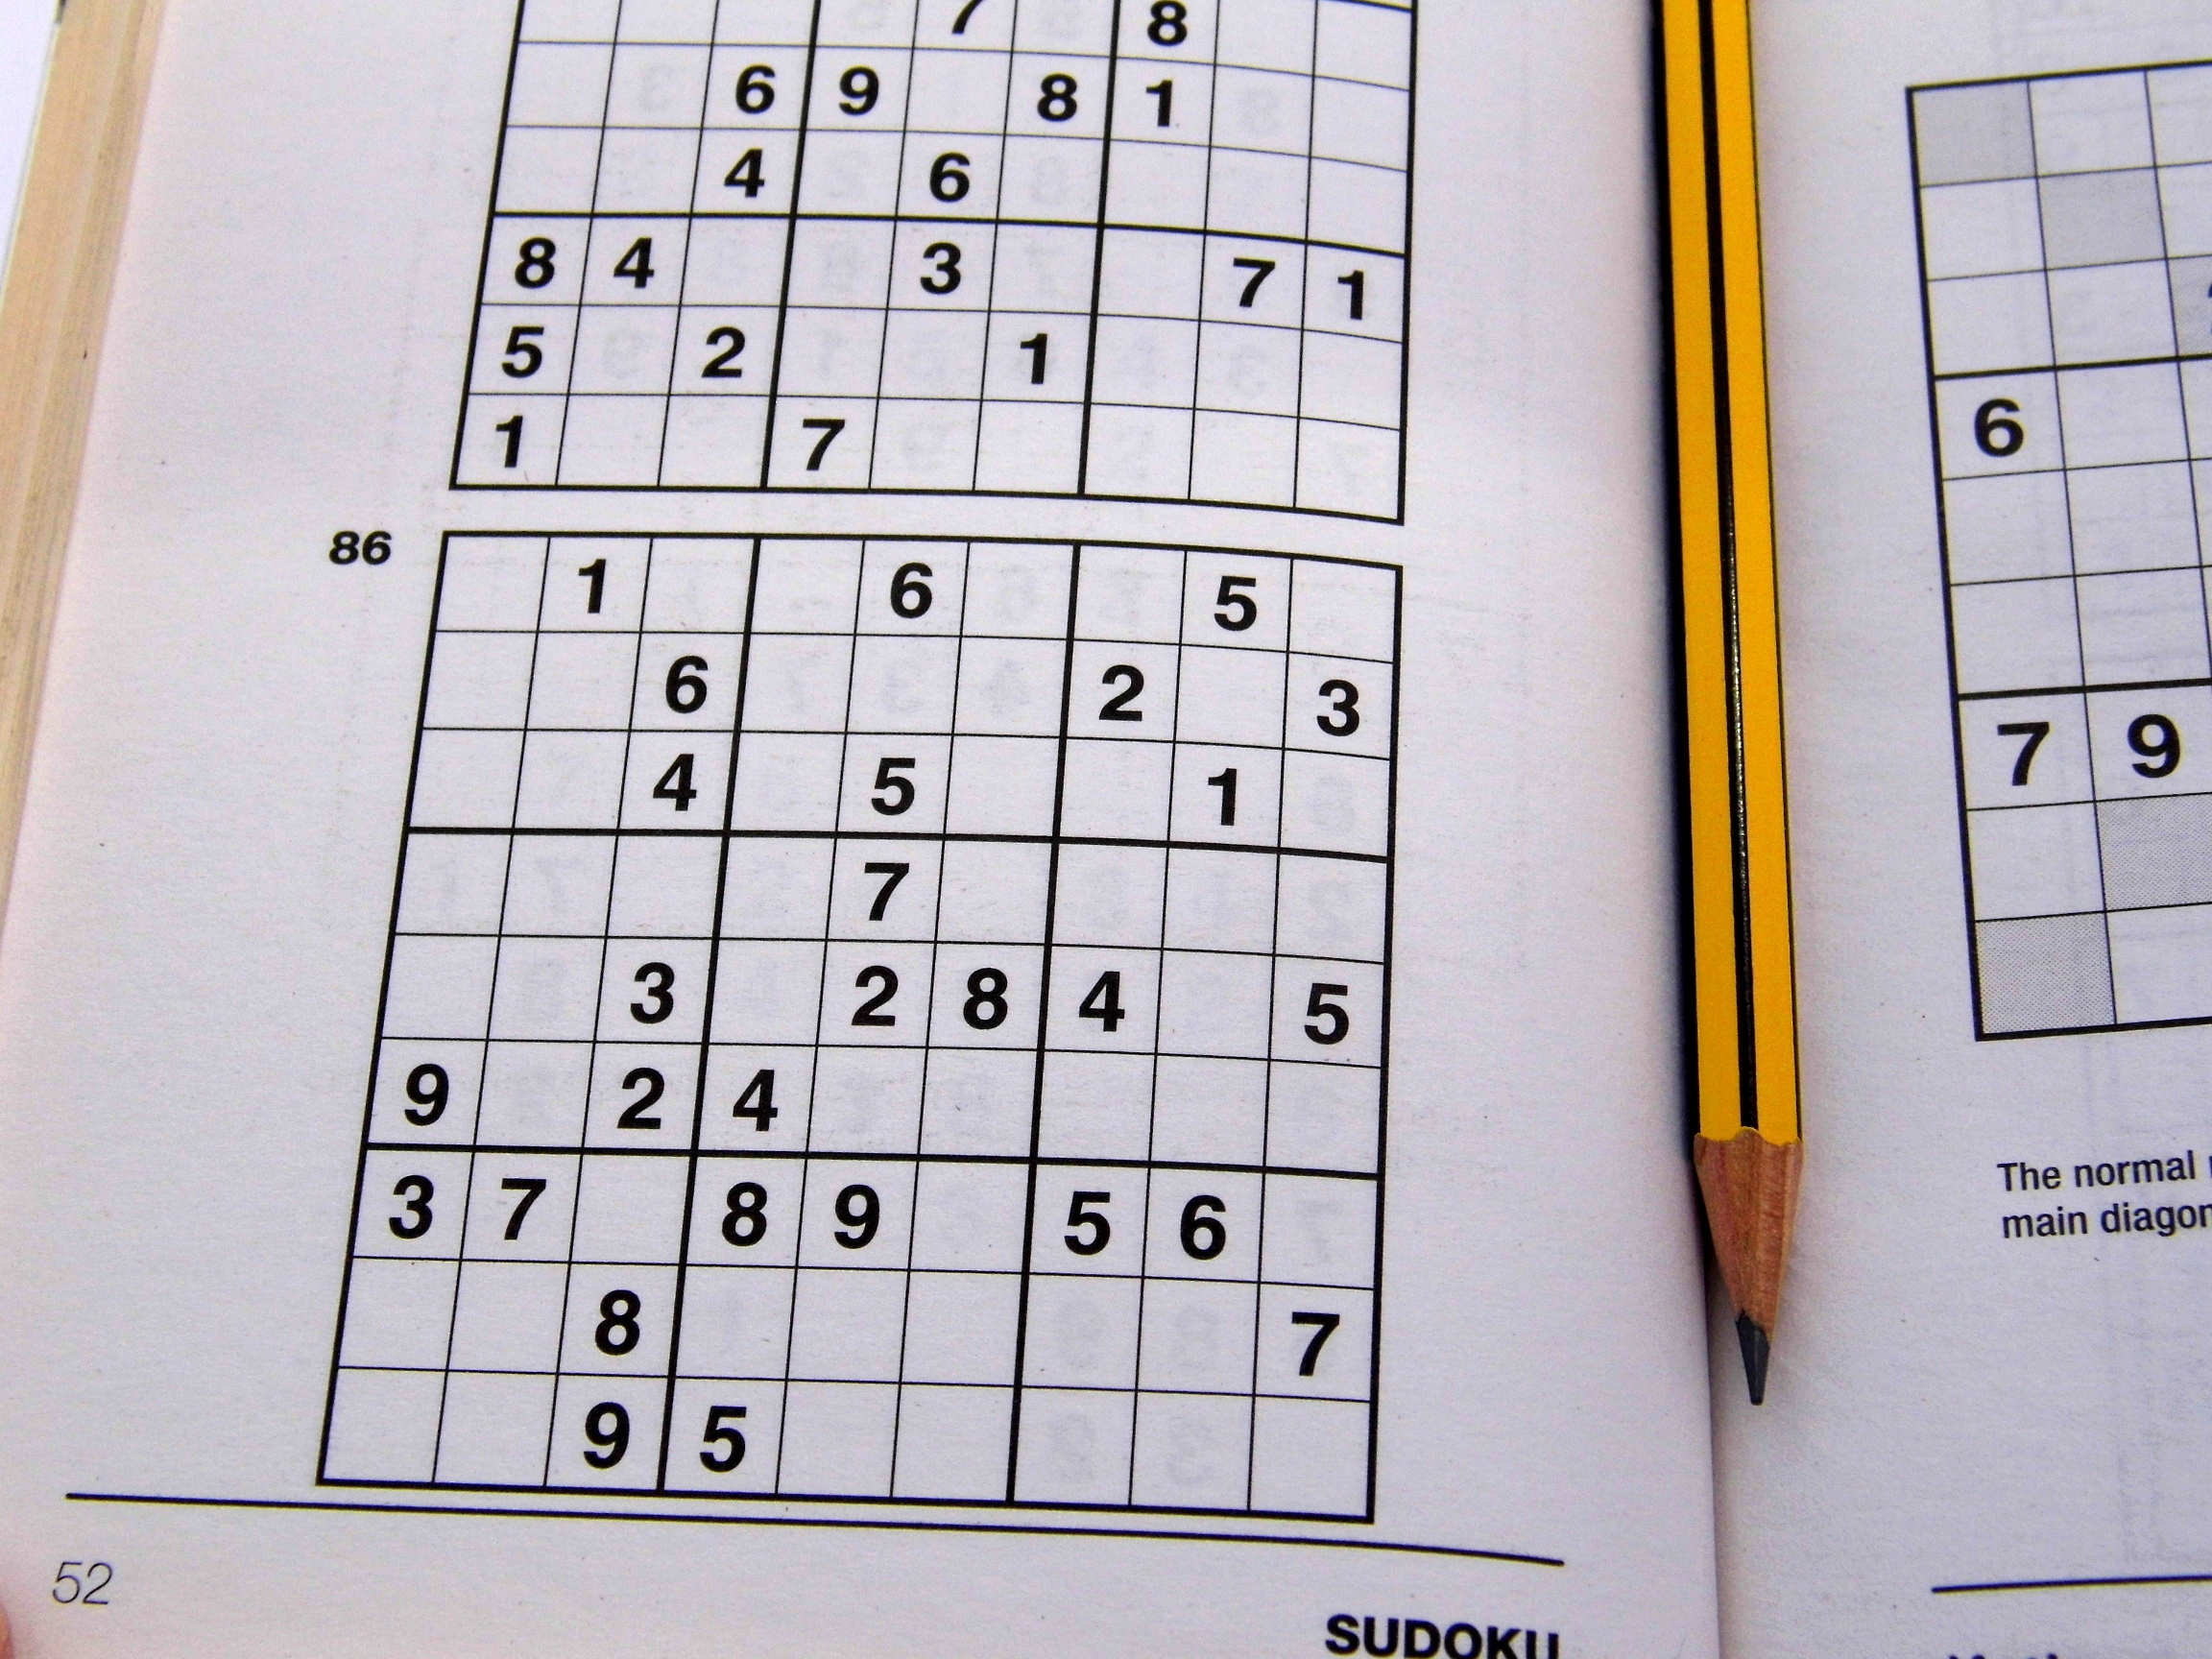 Archive Puzzles – 24 Evil Sudoku Puzzles – Books 1 To 10